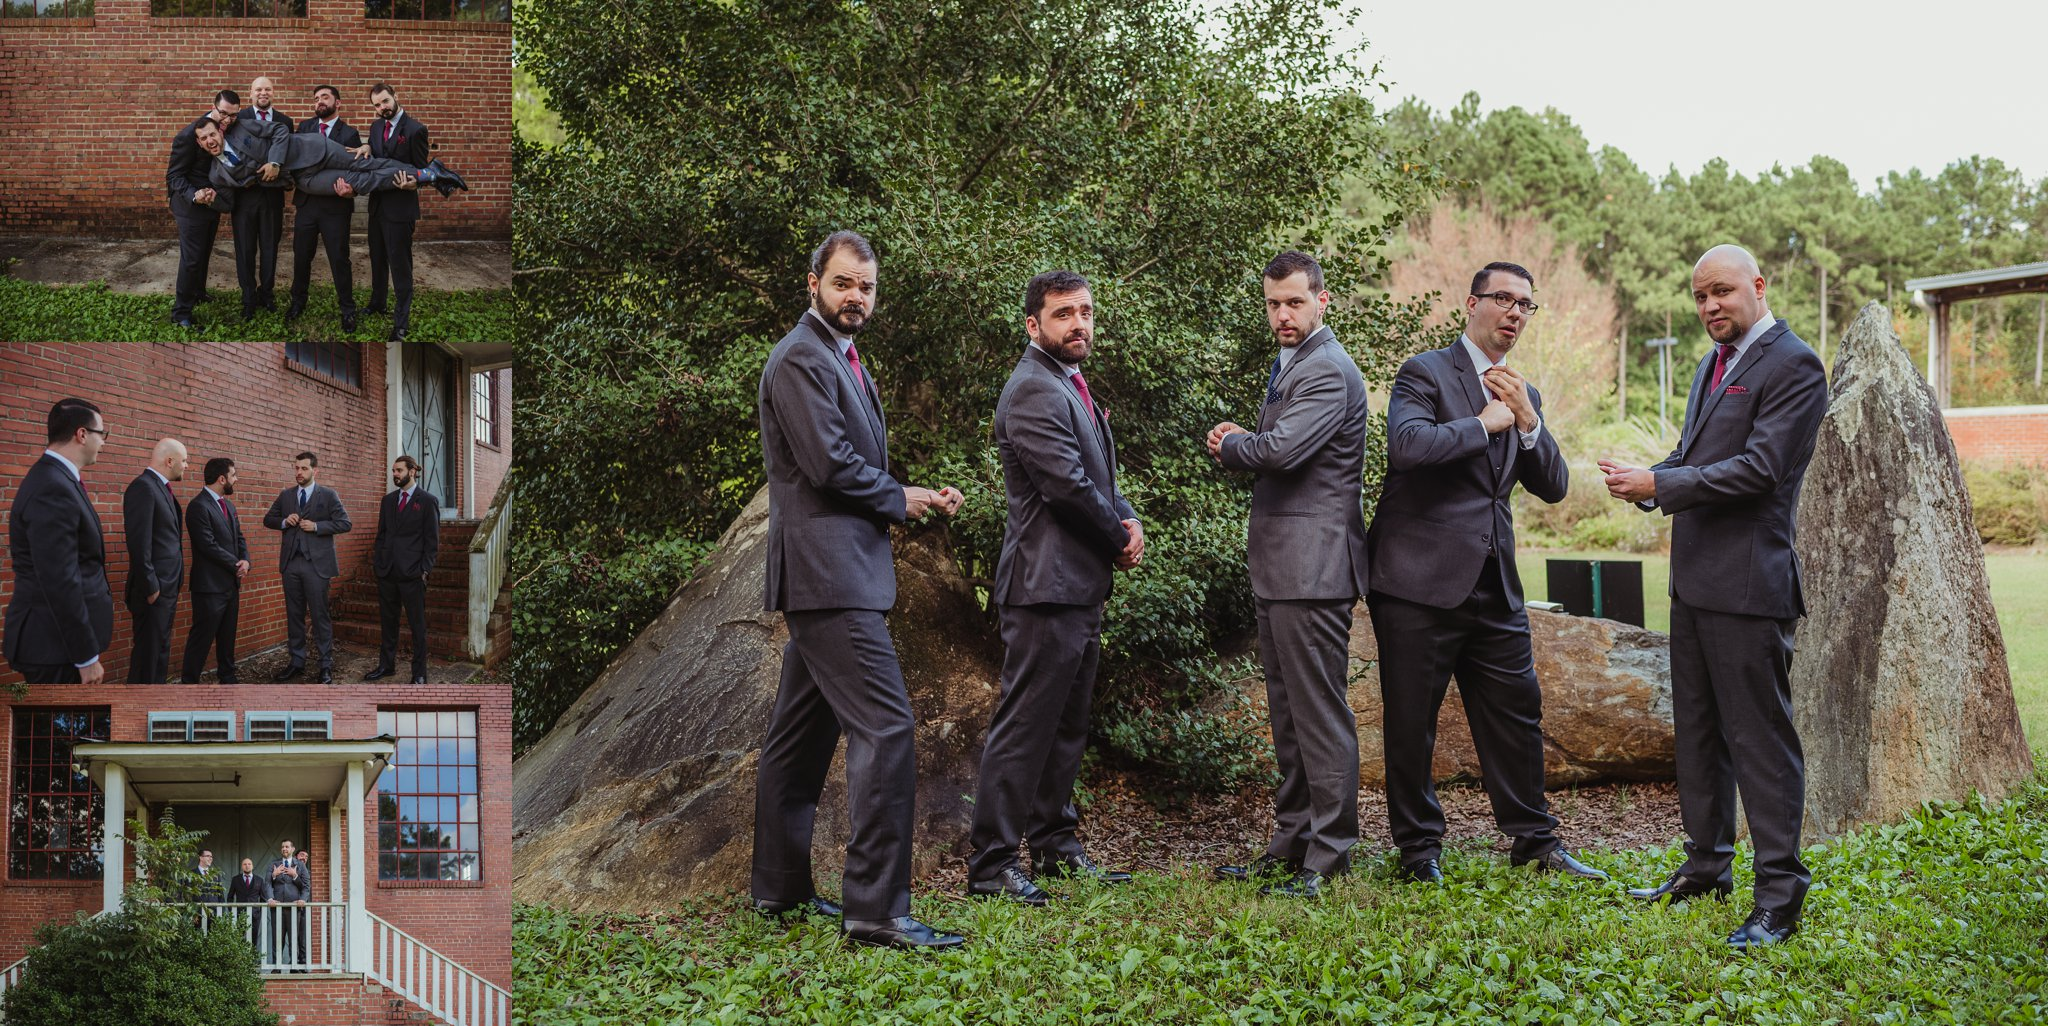 The groom and his groomsmen take pictures before the wedding ceremony in Raleigh, North Carolina, pictures by Rose Trail Images.